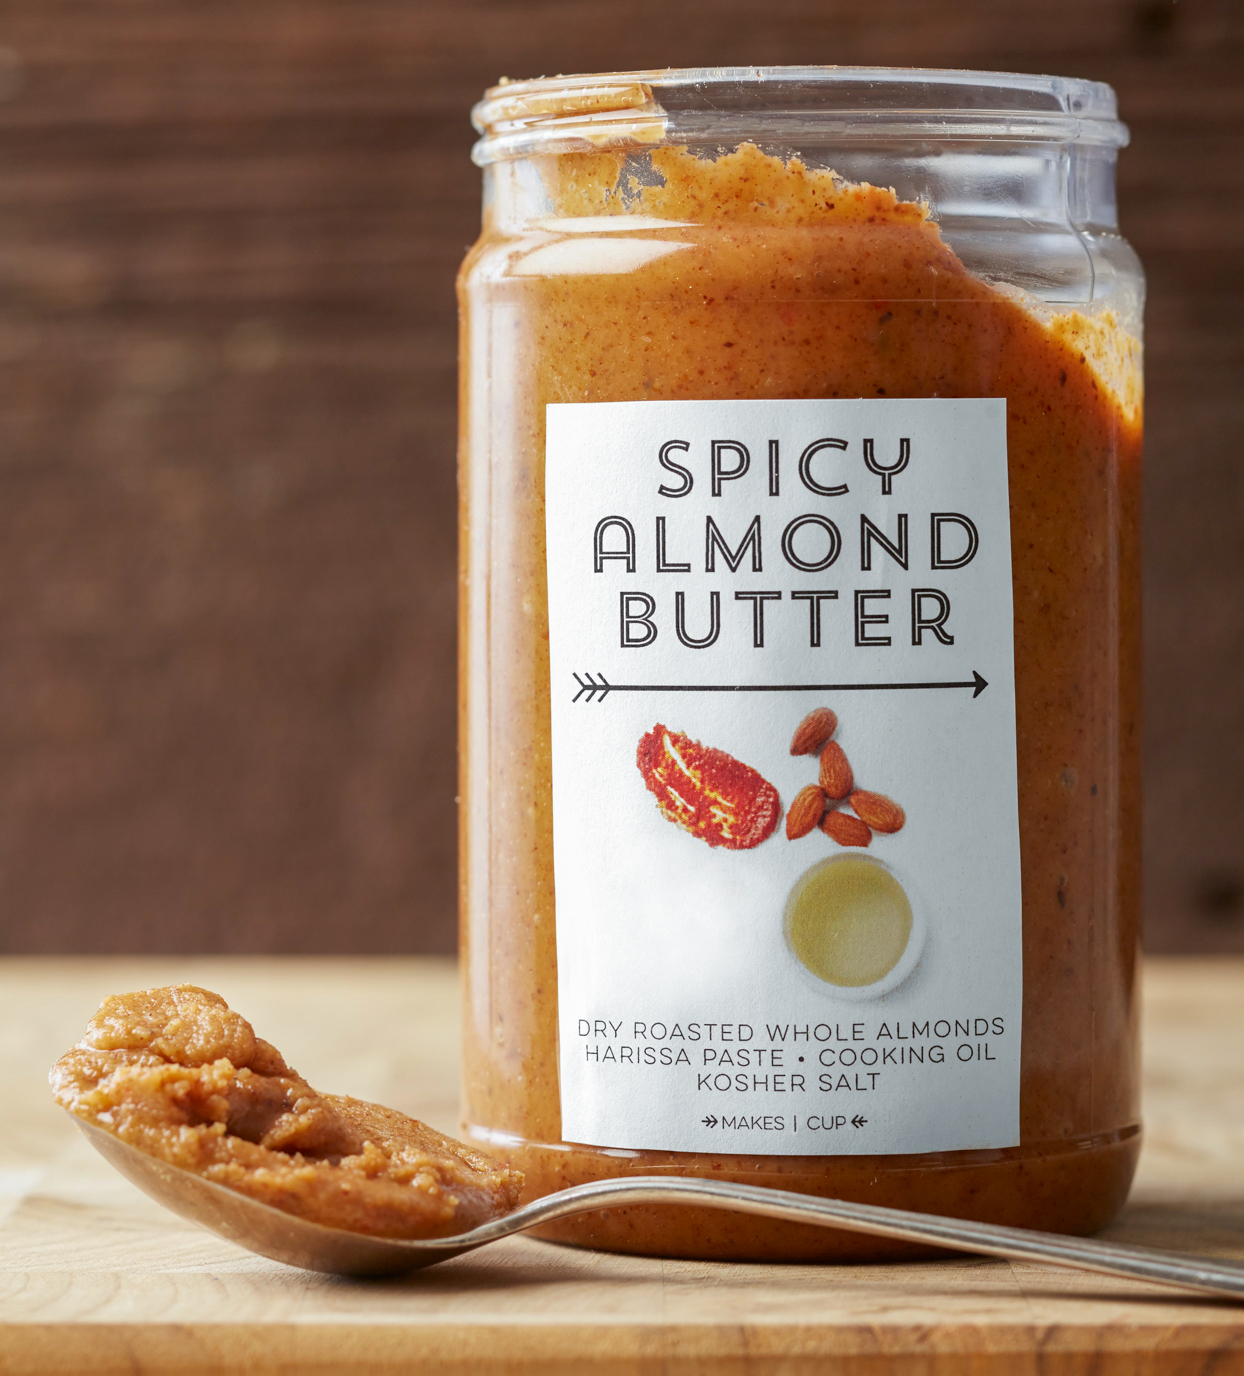 Spicy Almond Butter